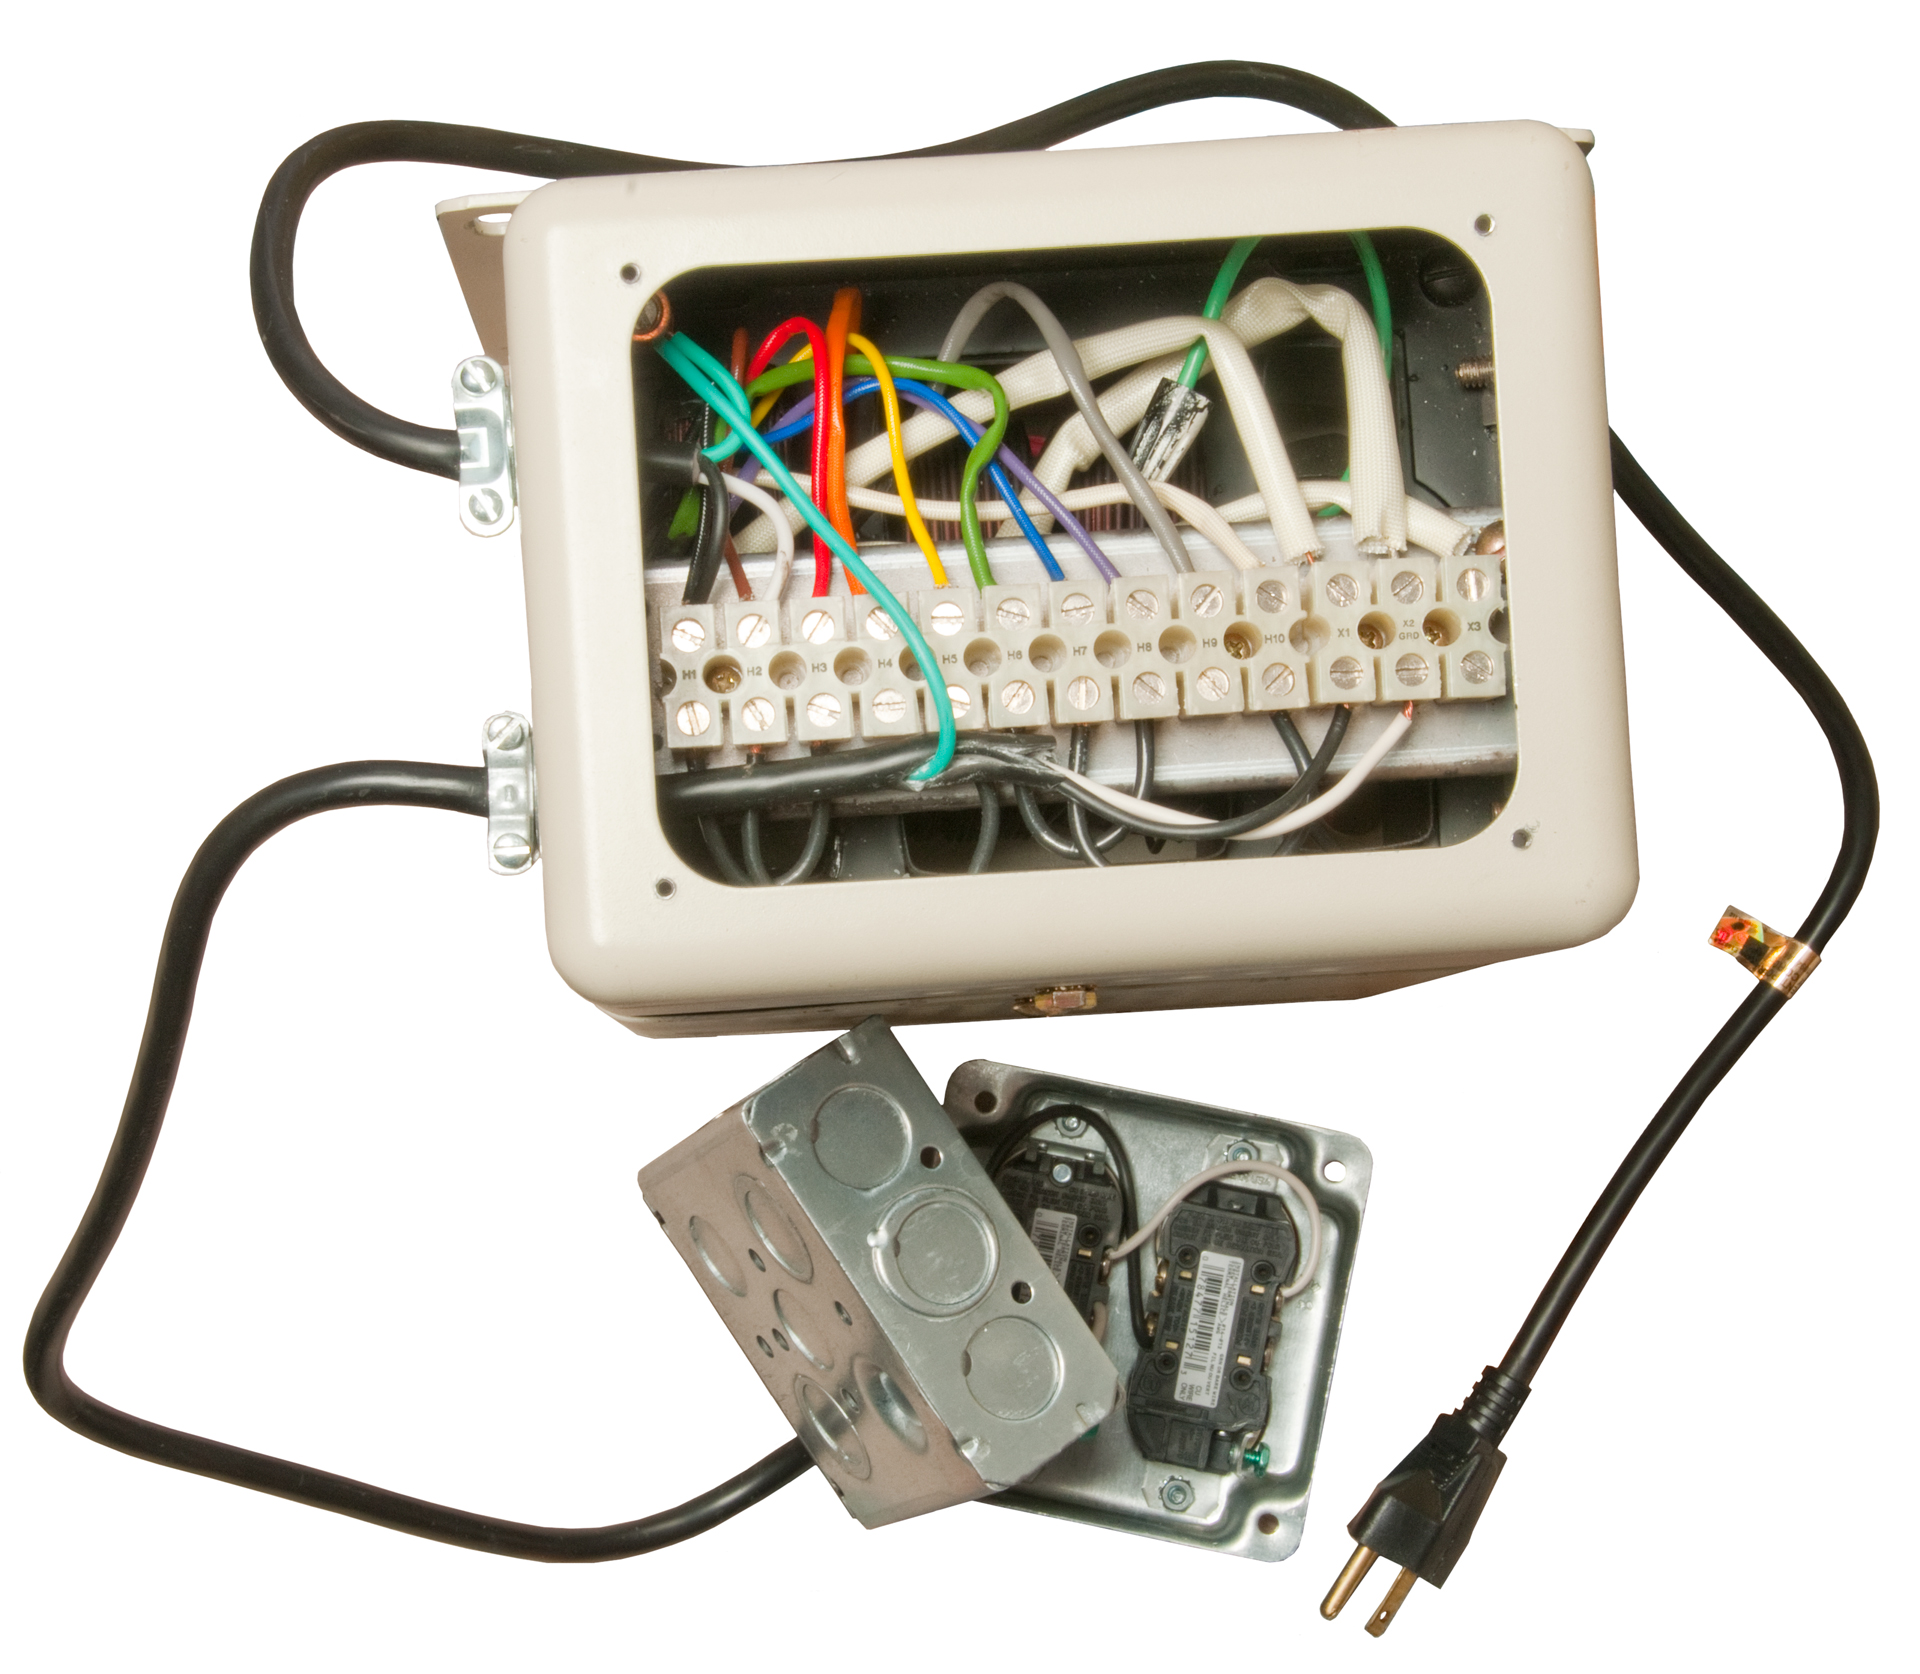 Sola Transformer Wiring Diagram : Sola transformer wiring diagram images